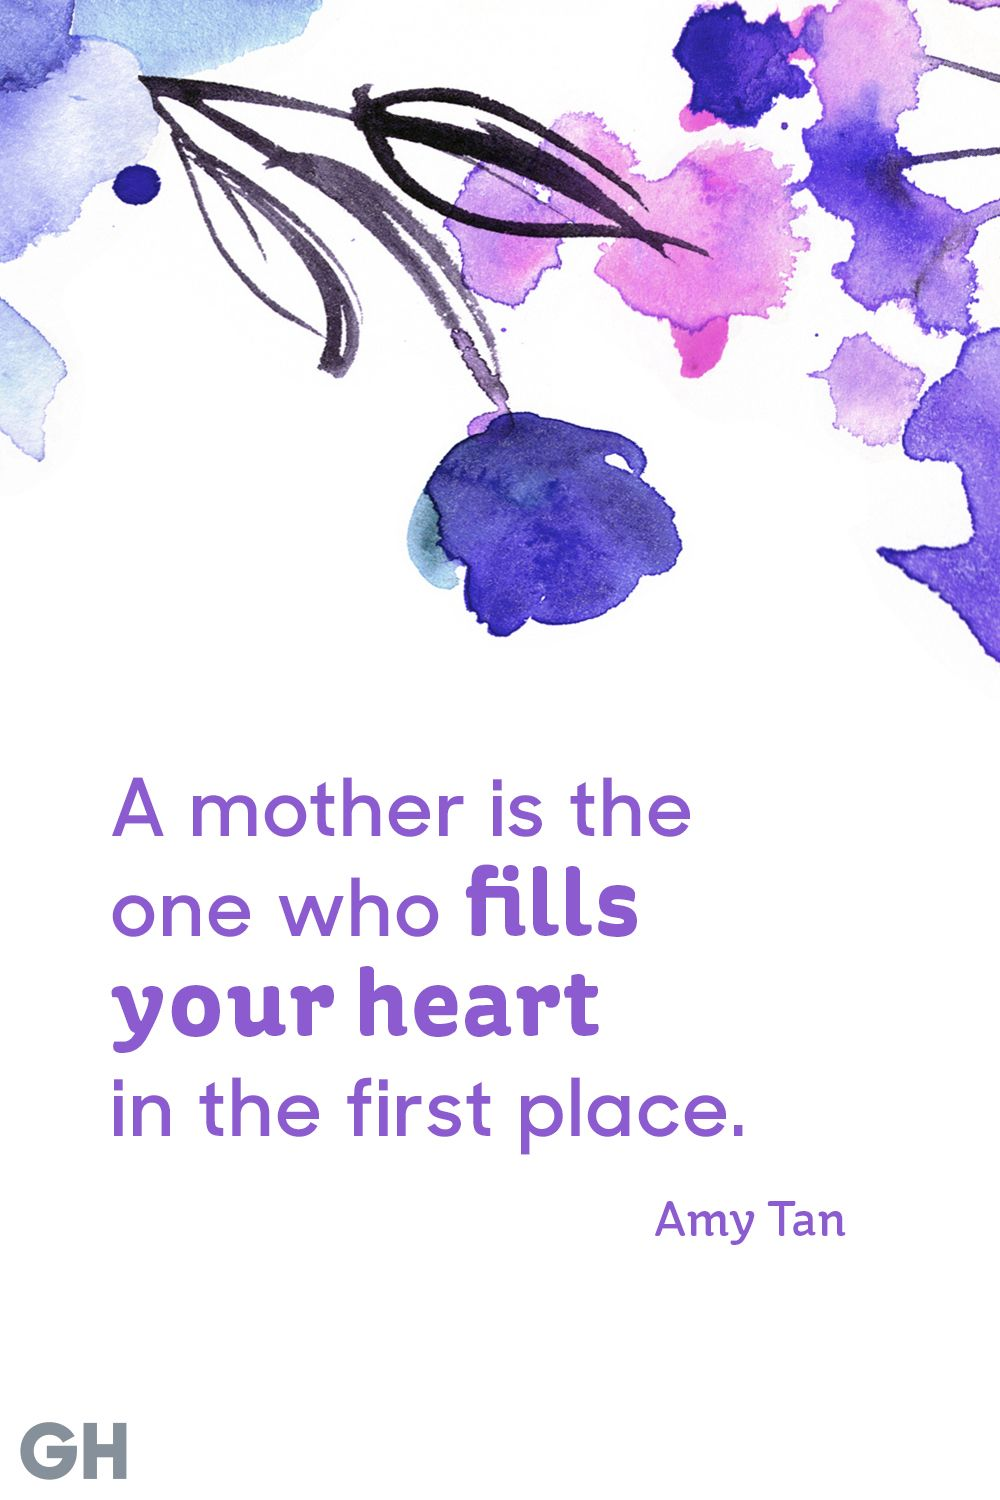 amy tan mother's day quote